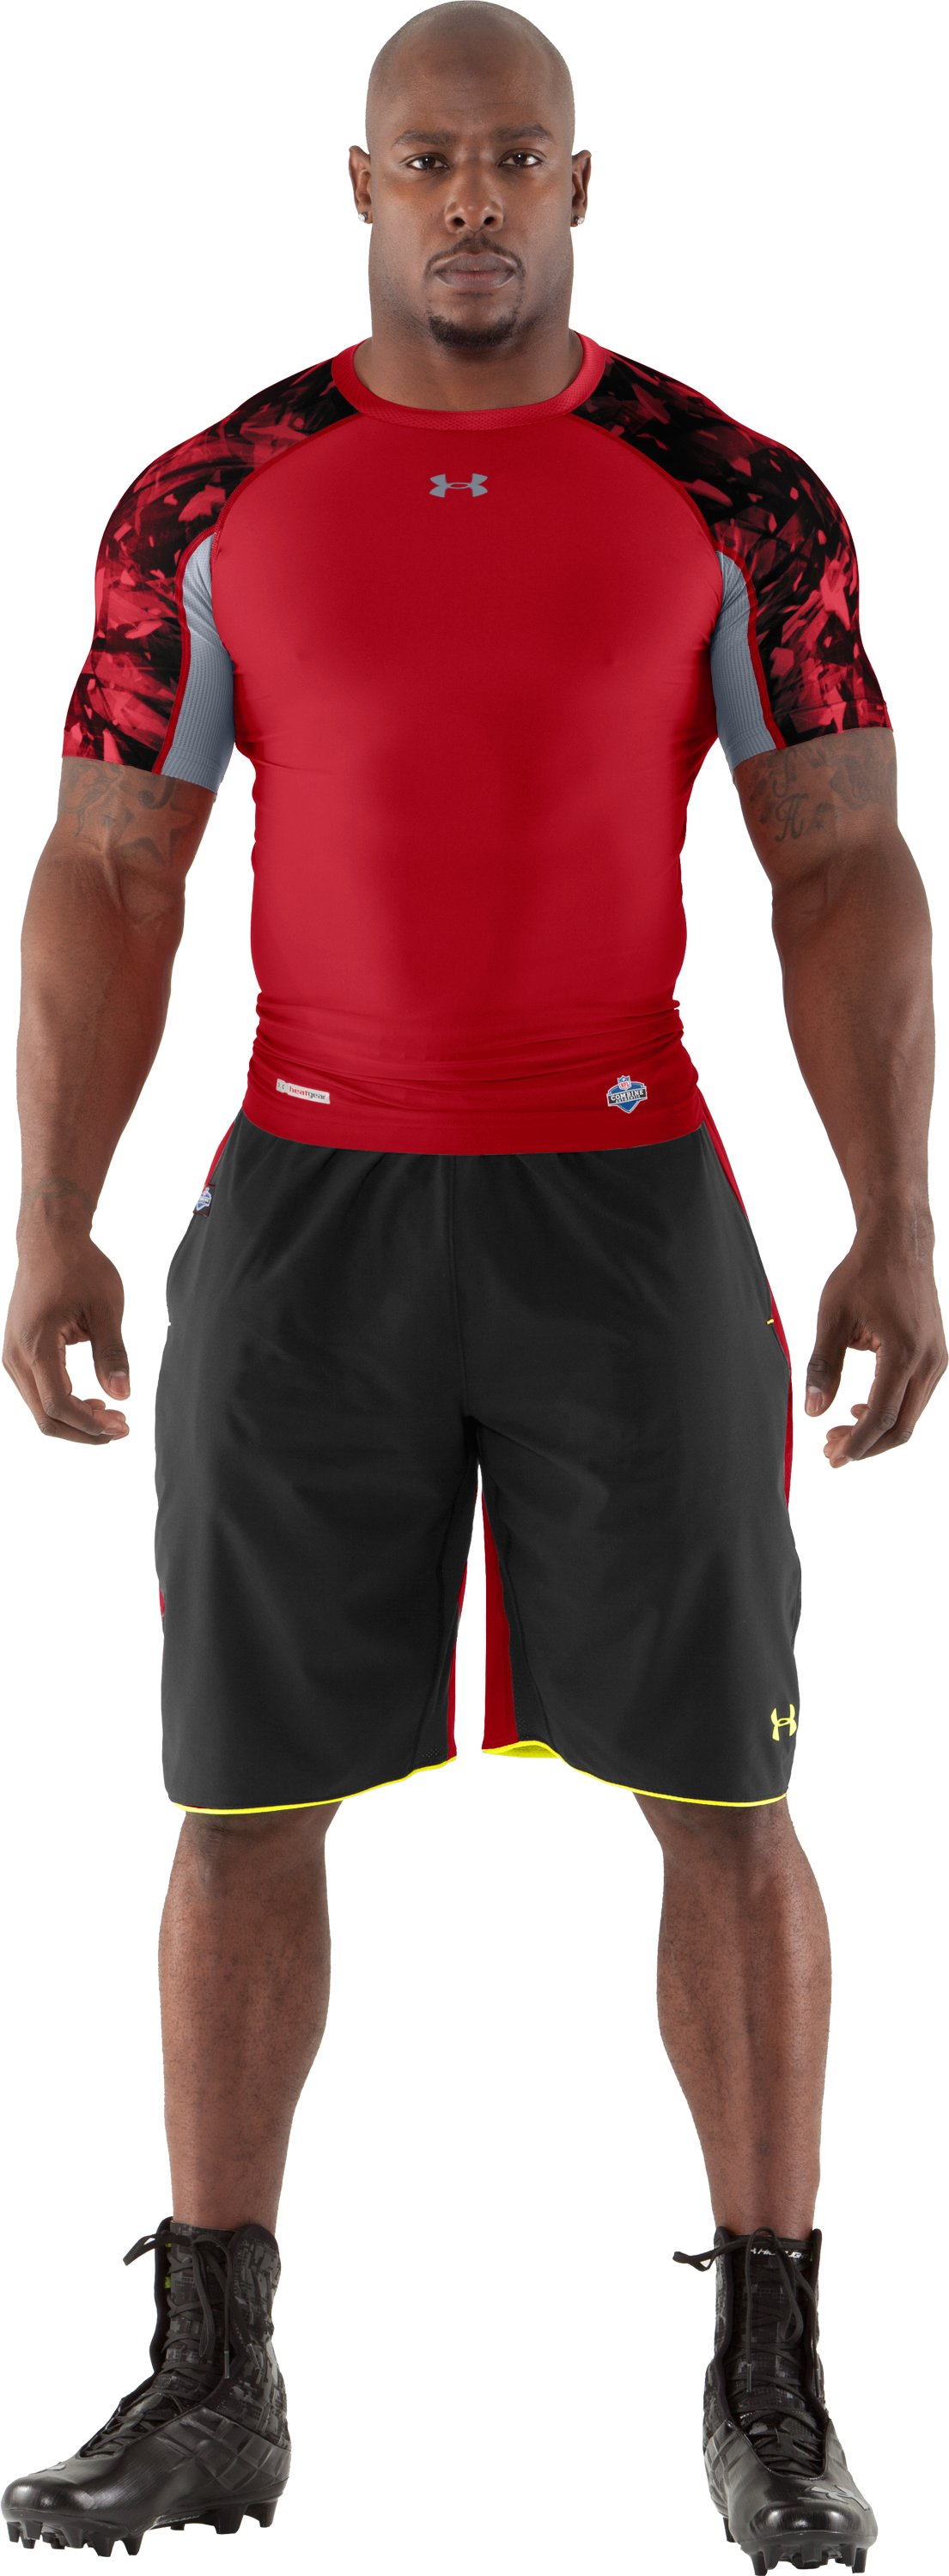 Men's NFL Combine Authentic Compression Short Sleeve, Red